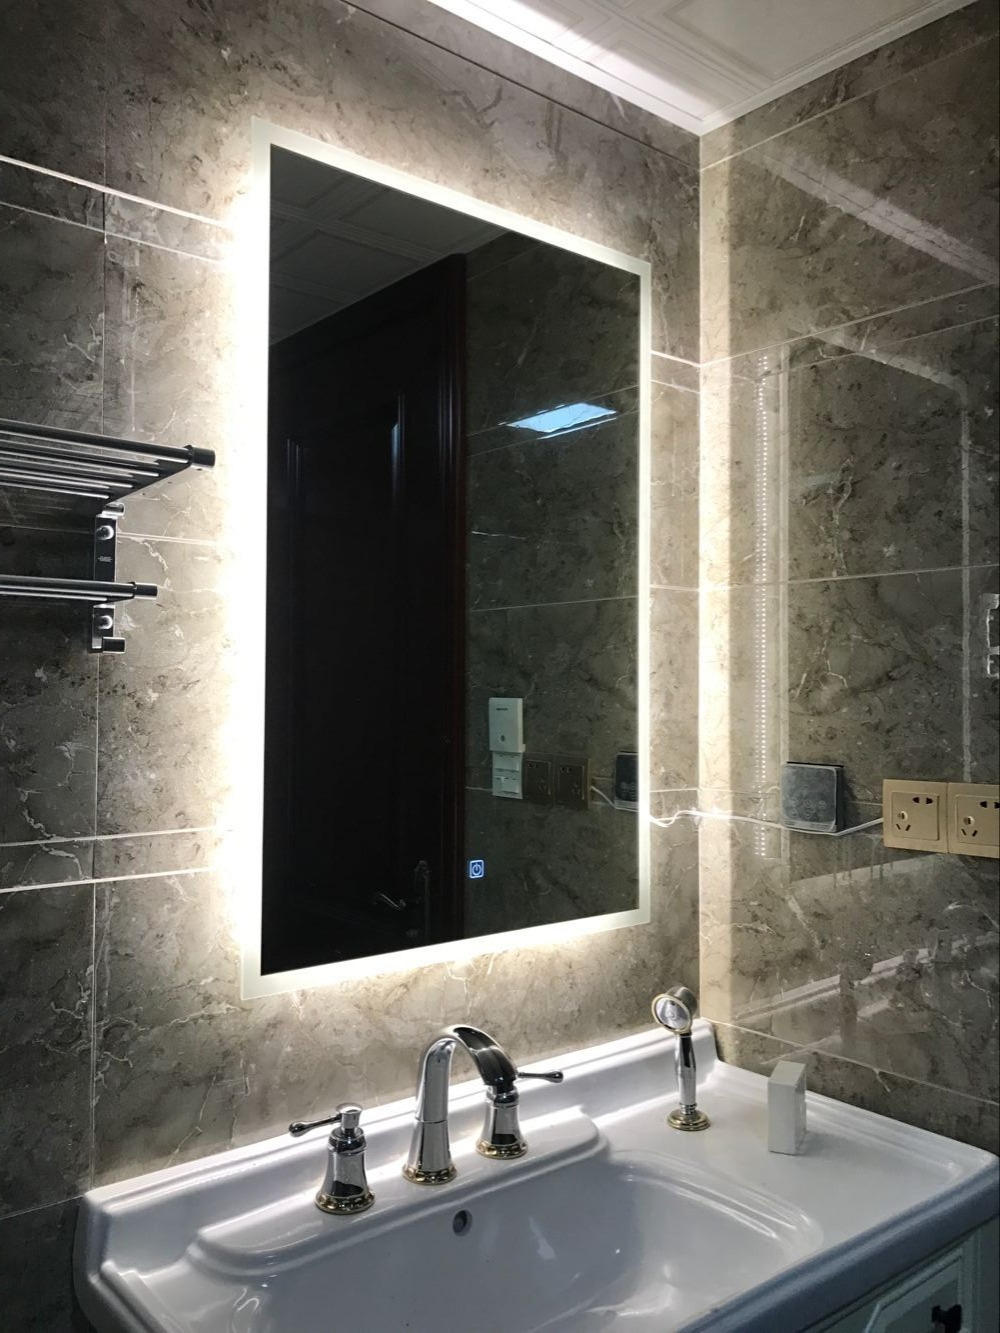 Box Diffusers Led Backlit Bathroom Mirror Vanity Square Wall Mount Bathroom Finger Touch Light Mirror Bath Mirrors